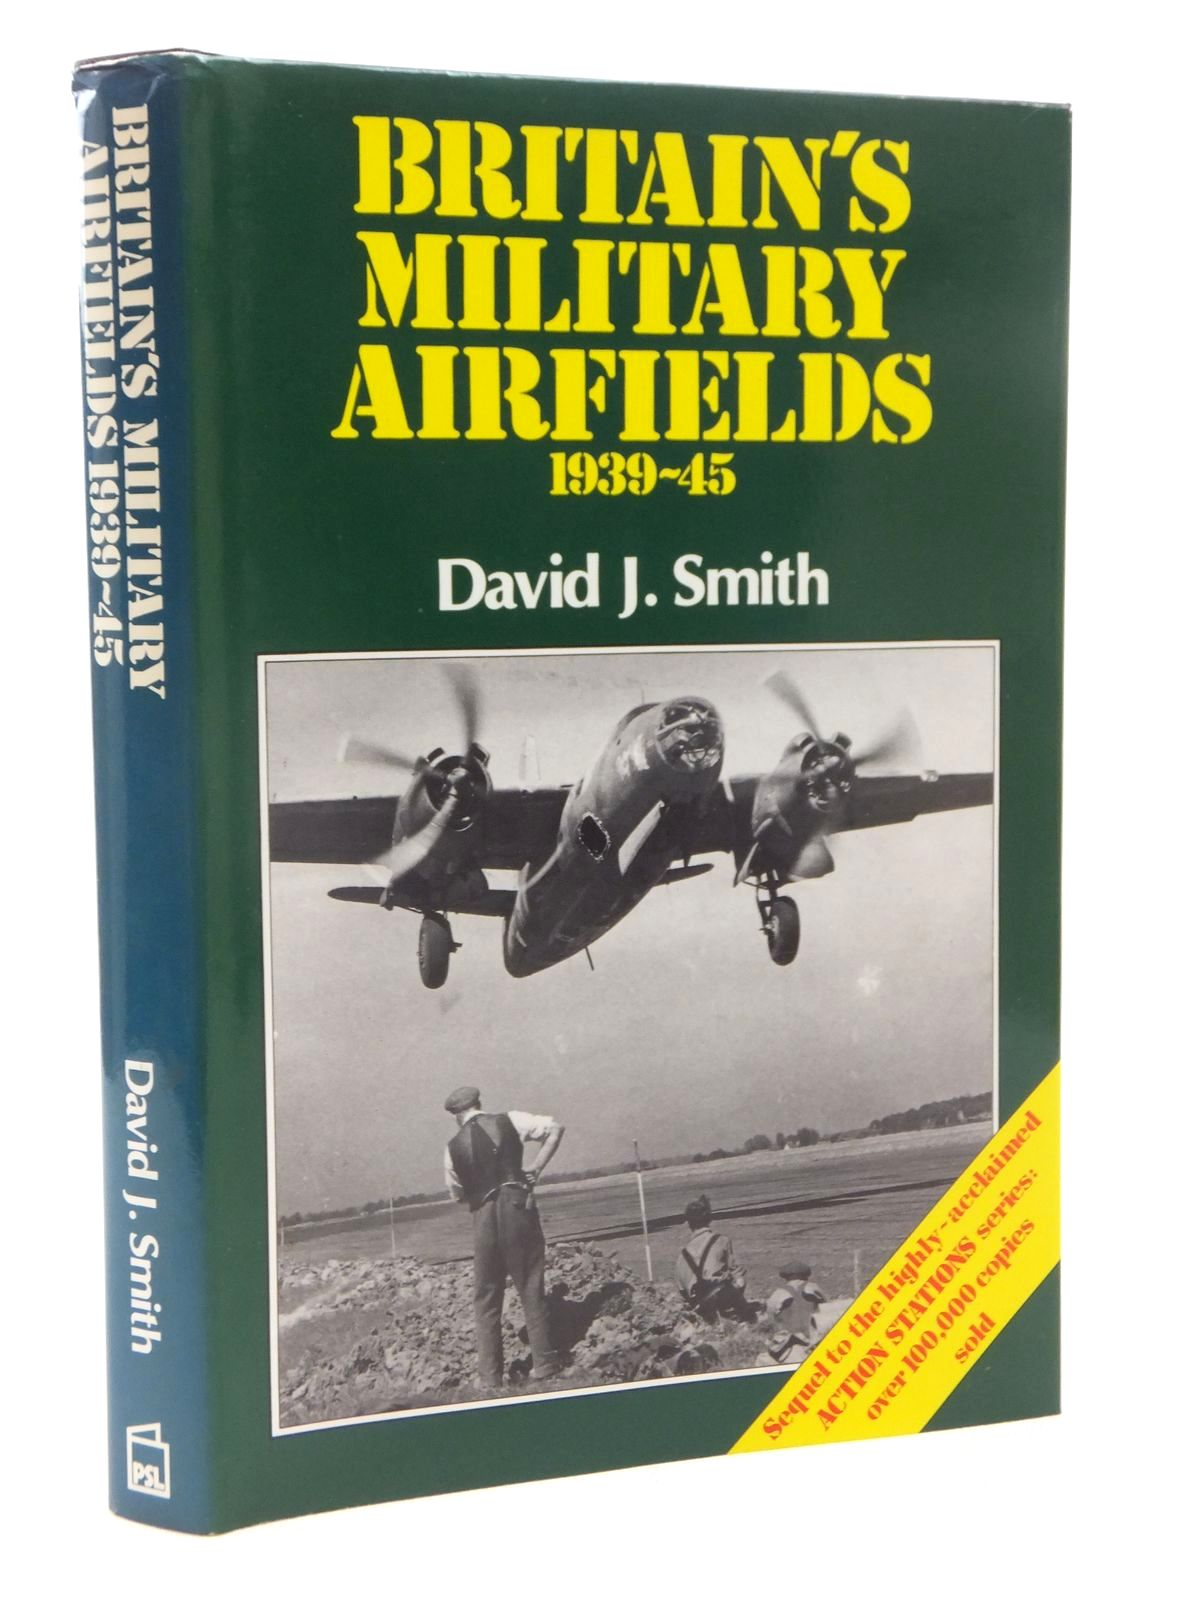 Photo of BRITAIN'S MILITARY AIRFIELDS 1939-45 written by Smith, David J. published by Patrick Stephens Limited (STOCK CODE: 1610096)  for sale by Stella & Rose's Books